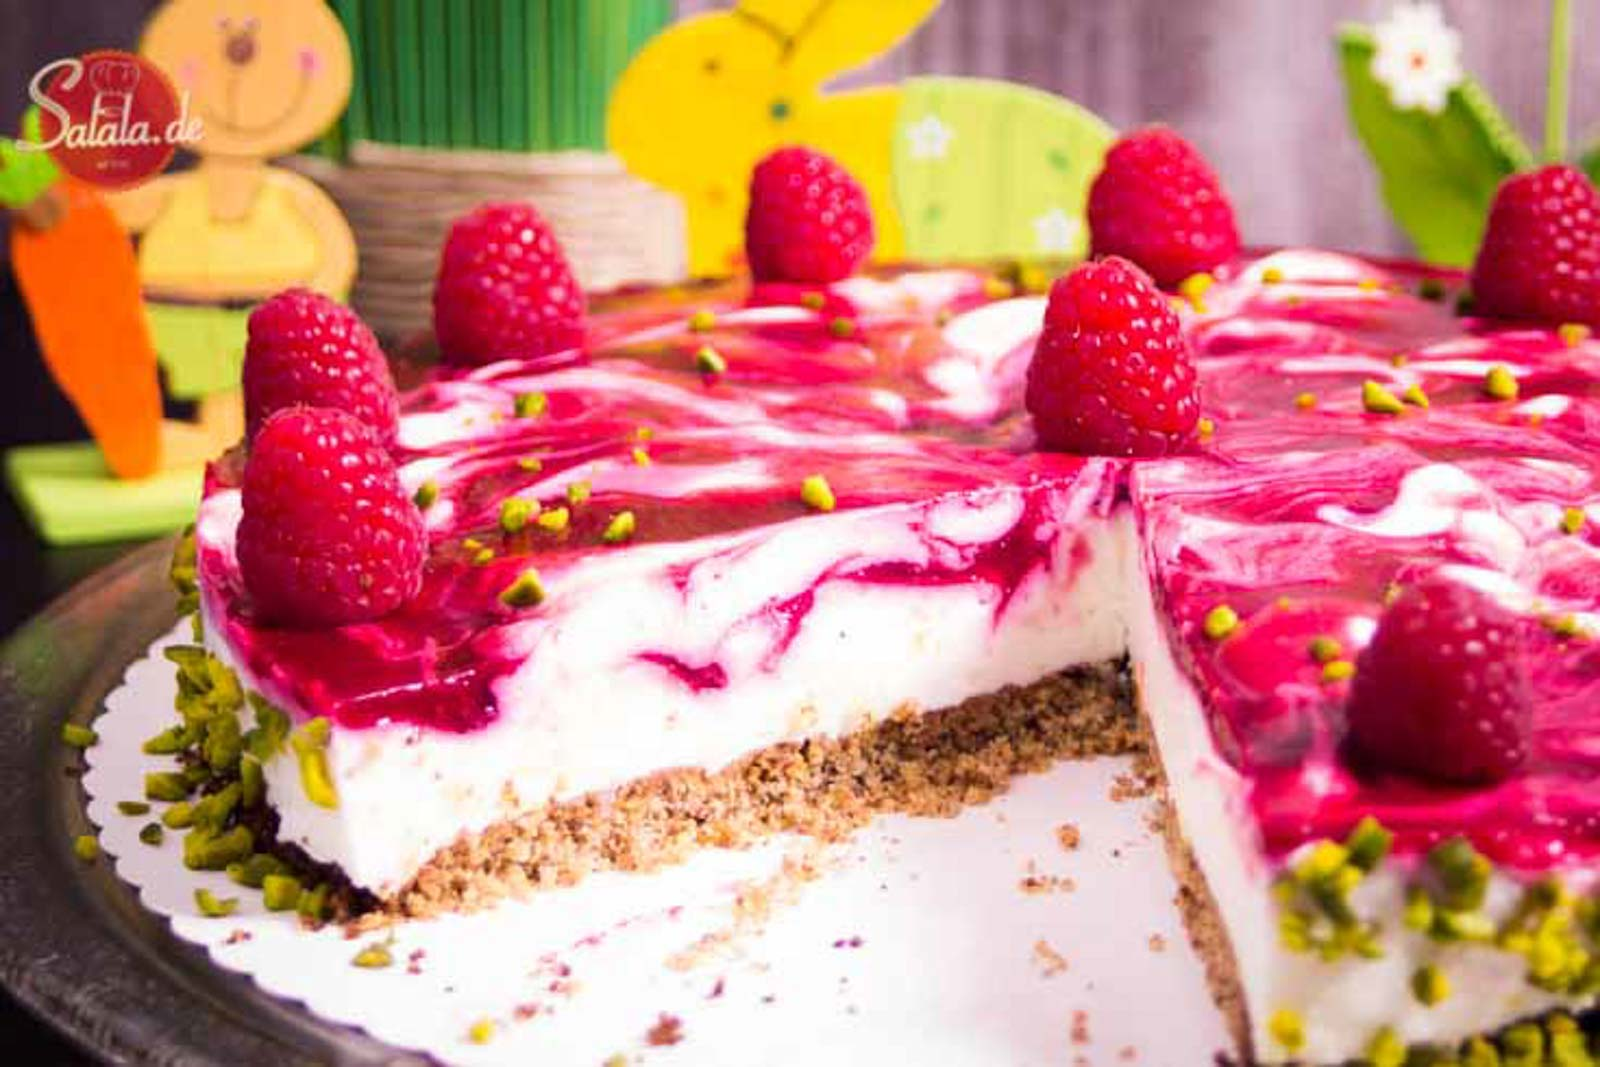 Himbeer Quarktorte Low Carb Und Glutenfrei Salala De Low Carb